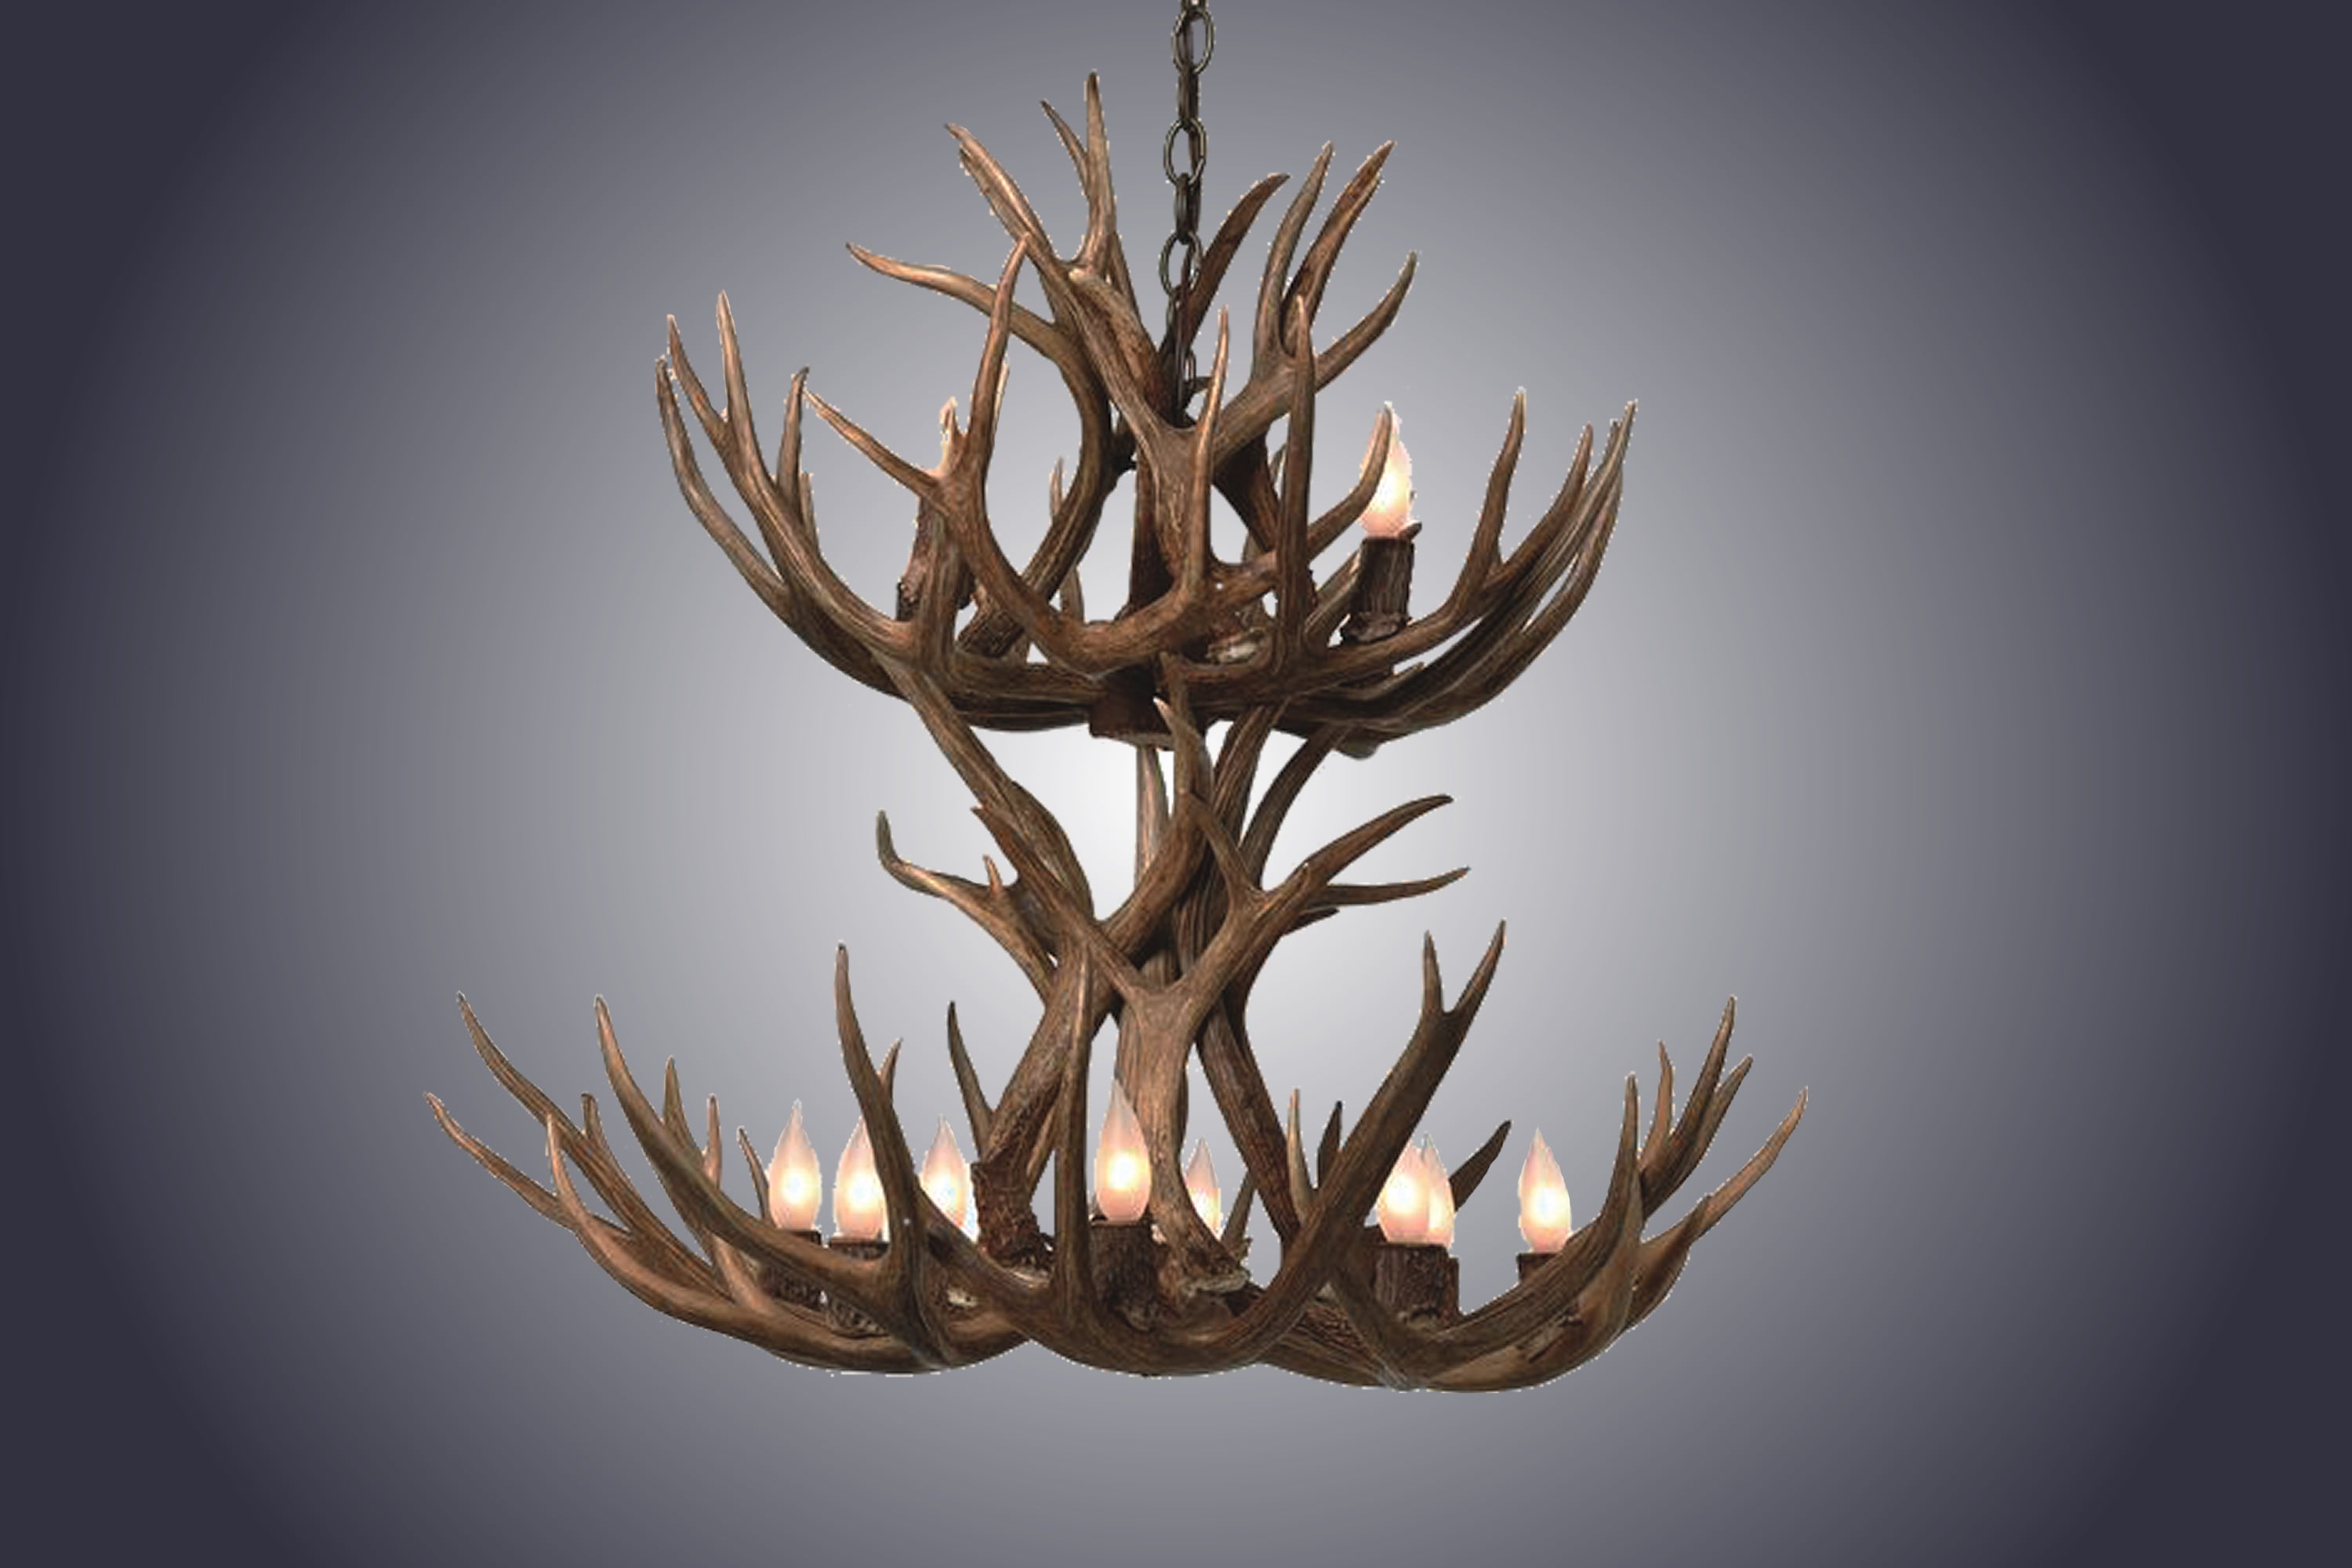 8 Light Small Double Tiered Mule Deer Antler Chandelier (SKU-70S) - Antlerworx